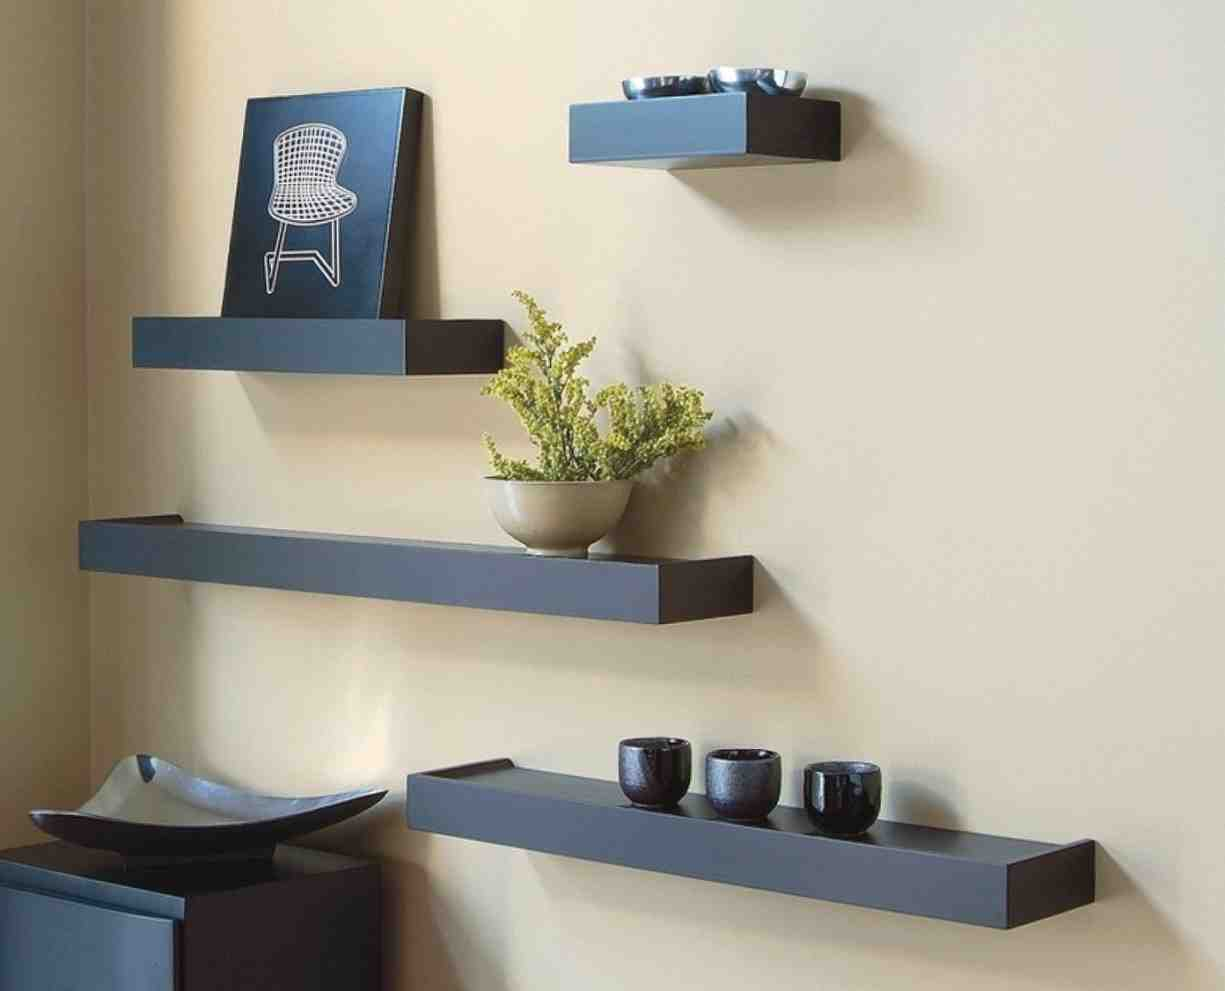 Bedroom Wall Shelves Decorating Ideas Wall Shelves Ideas Living Room Decor Ideasdecor Ideas